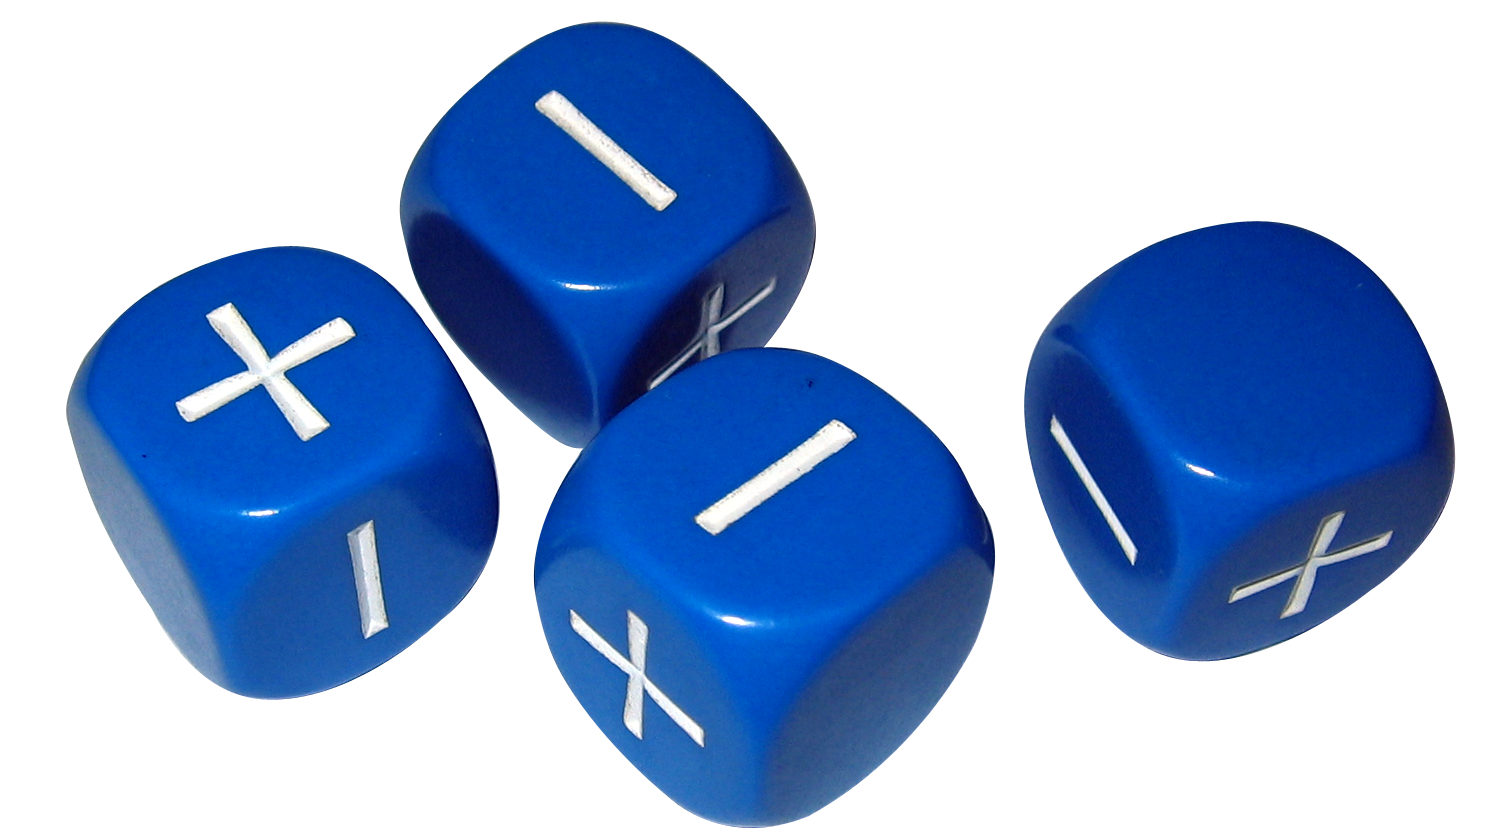 Blue Dice Png image #27669